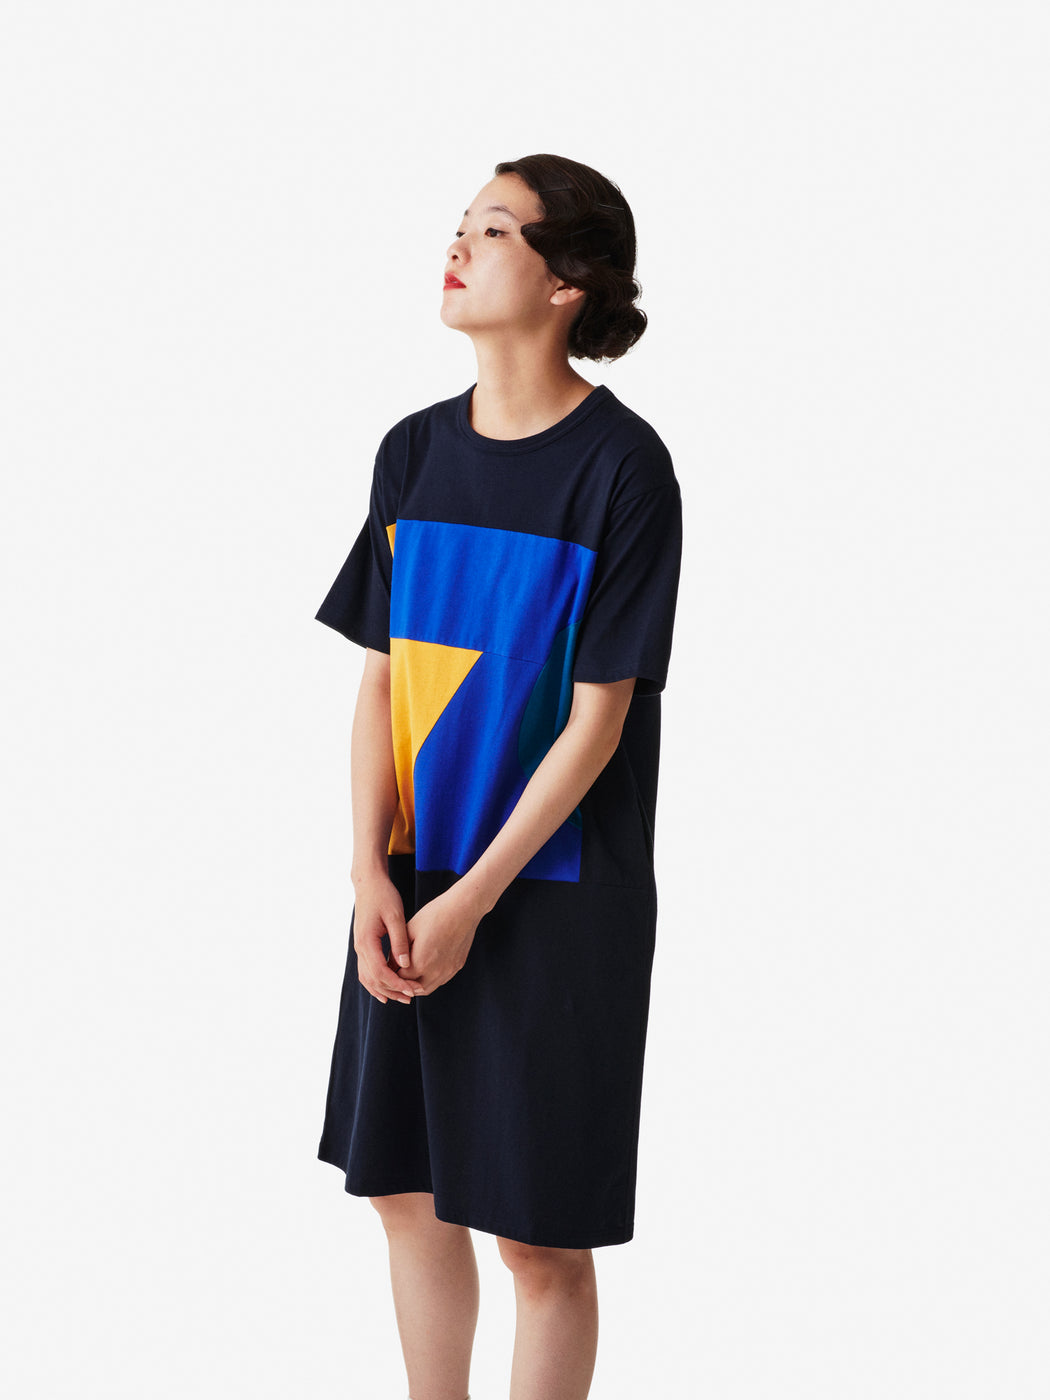 Color Blocks Women's Short Sleeve T-shirt Dress